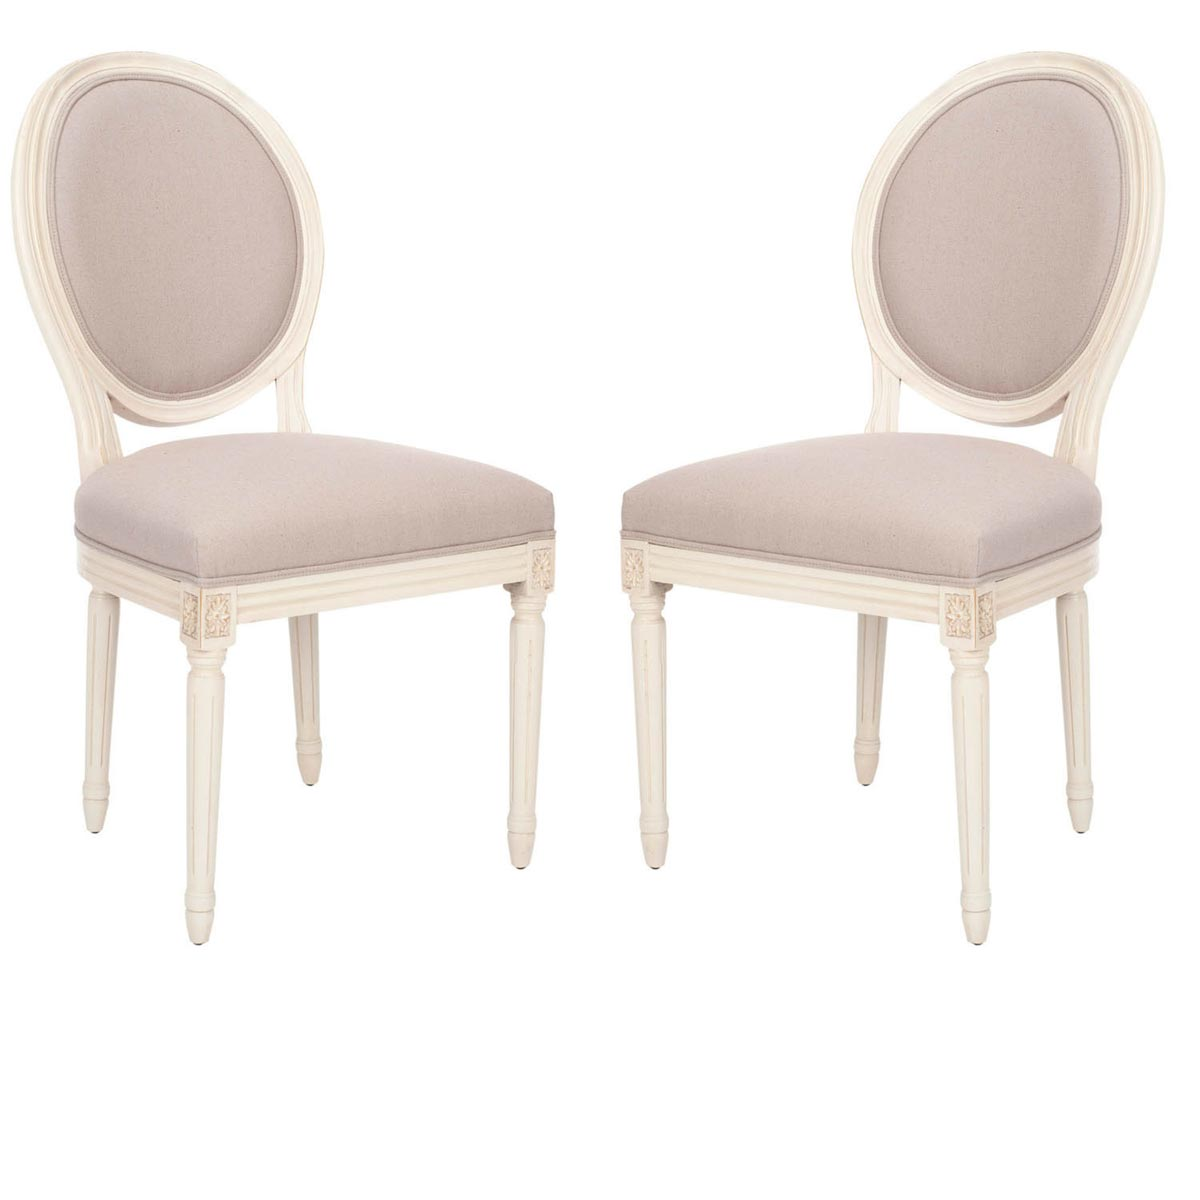 Image of: Fabulous Safavieh Dining Chairs Design